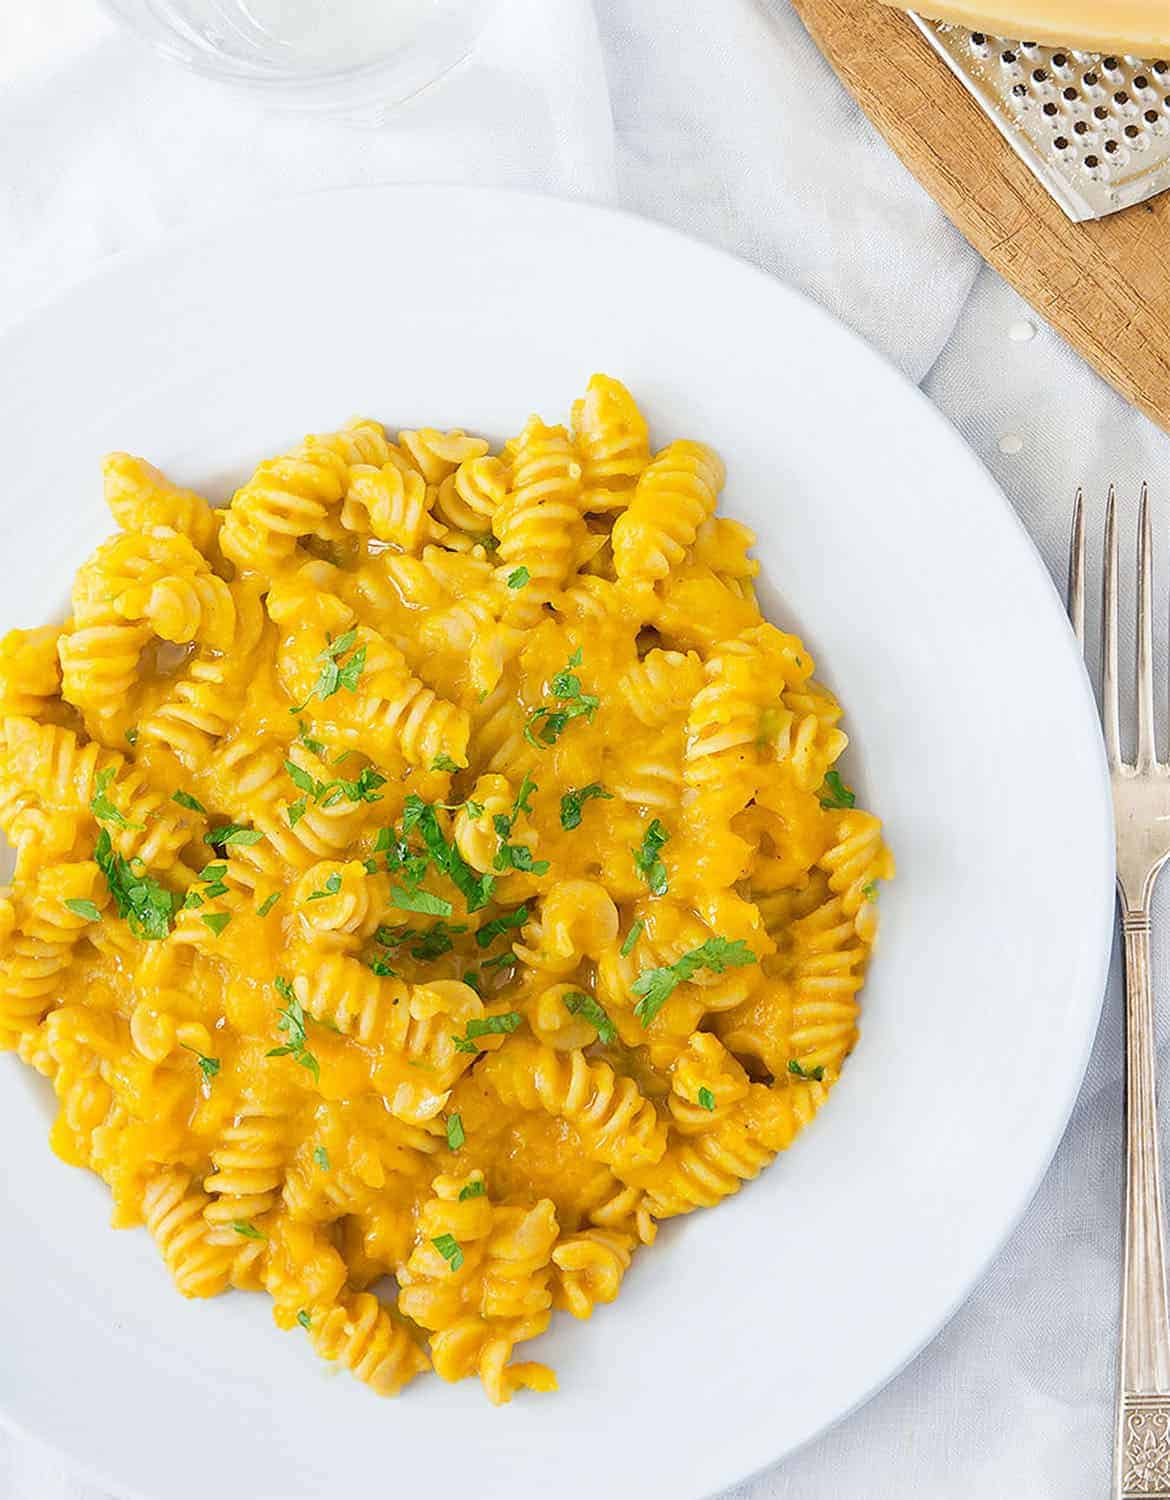 Pumpkin pasta on a light blue plate - The Clever Meal